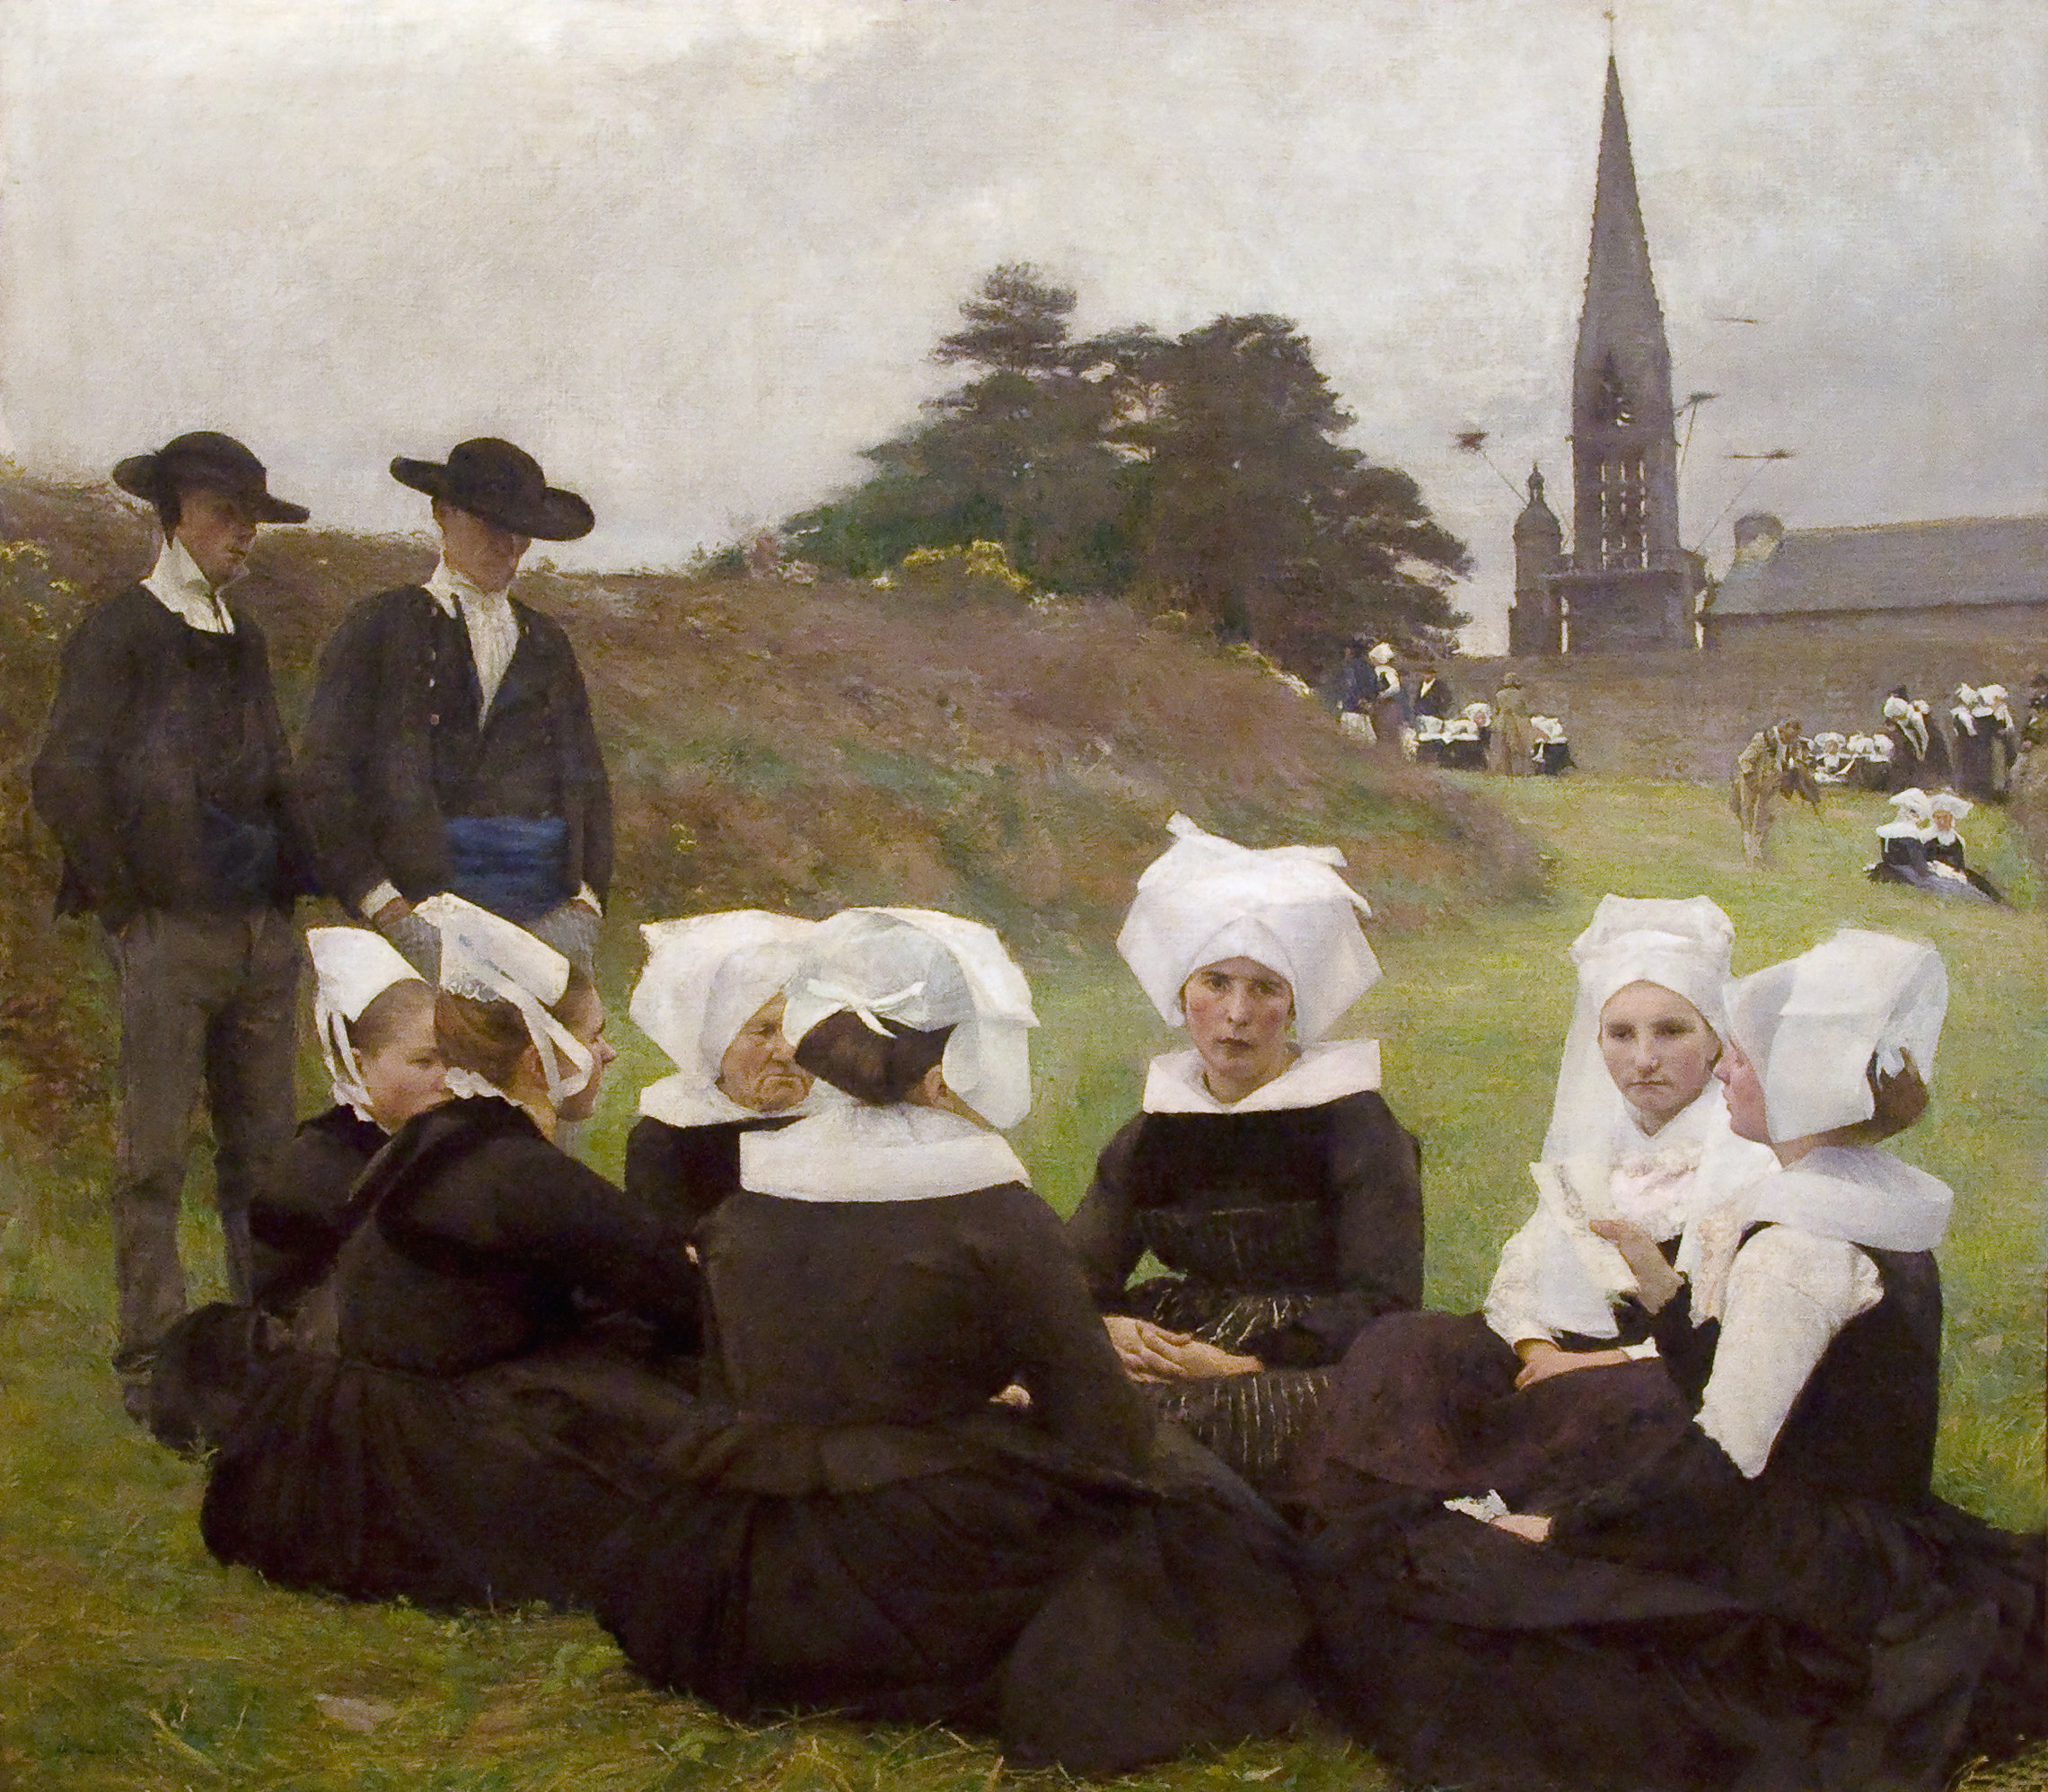 http://www.allartclassic.com/img/Pascal_Adolphe_Jean_Dagnan_Bouveret_DBP013.jpg